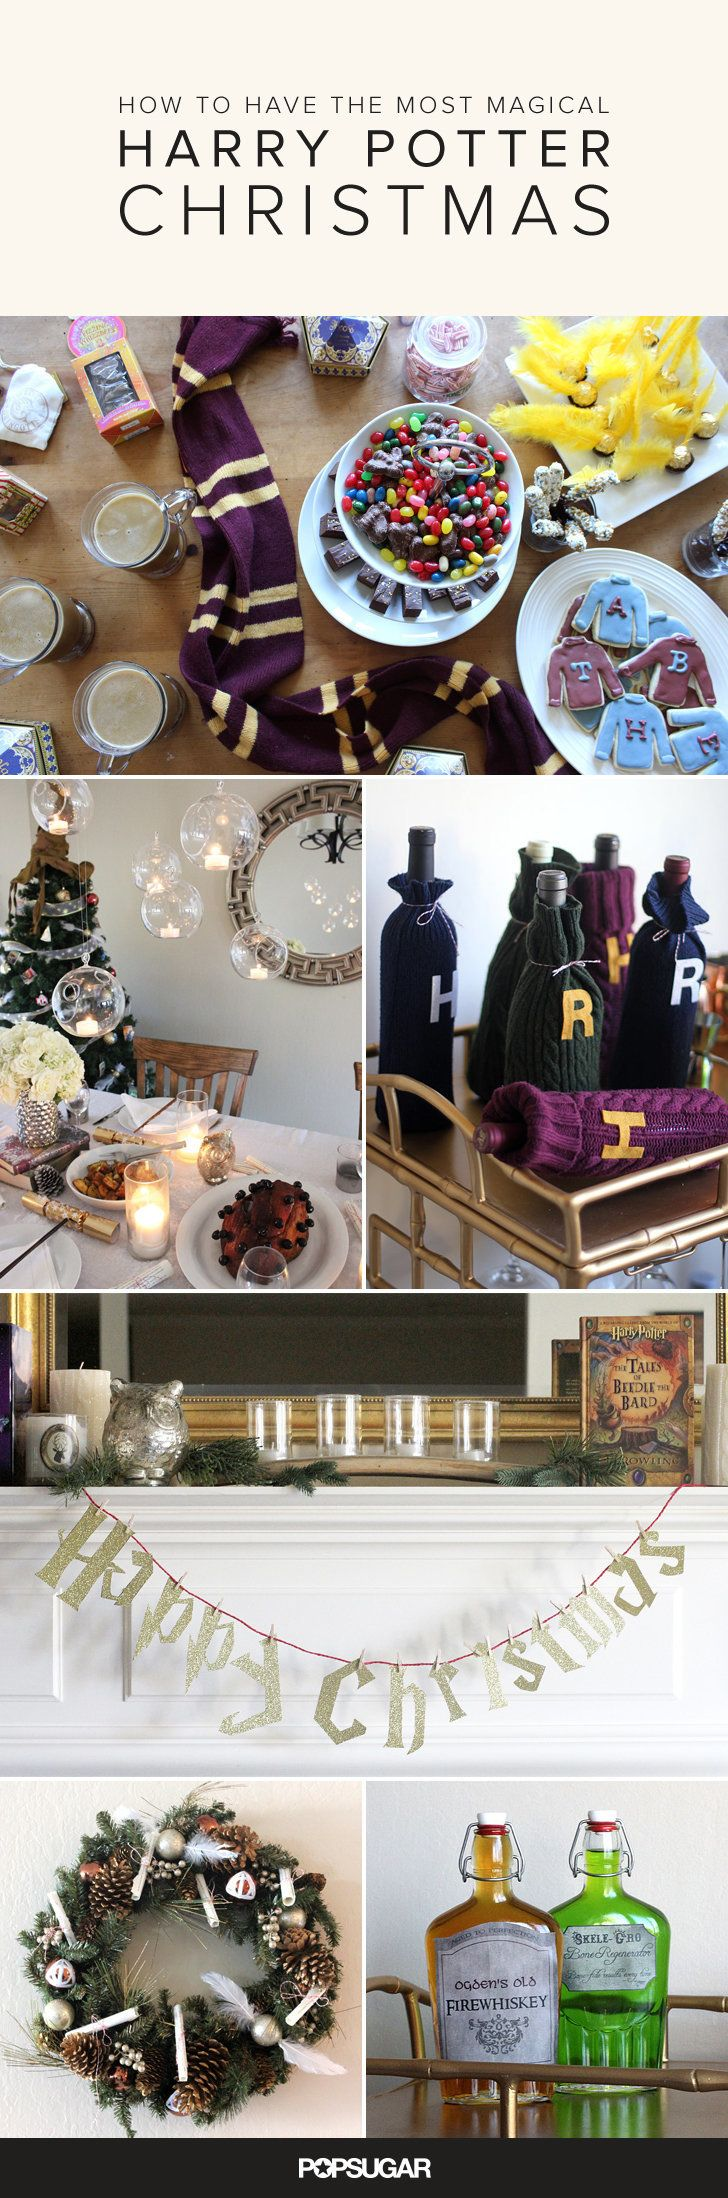 Harry Potter dreams do come true for Christmas.